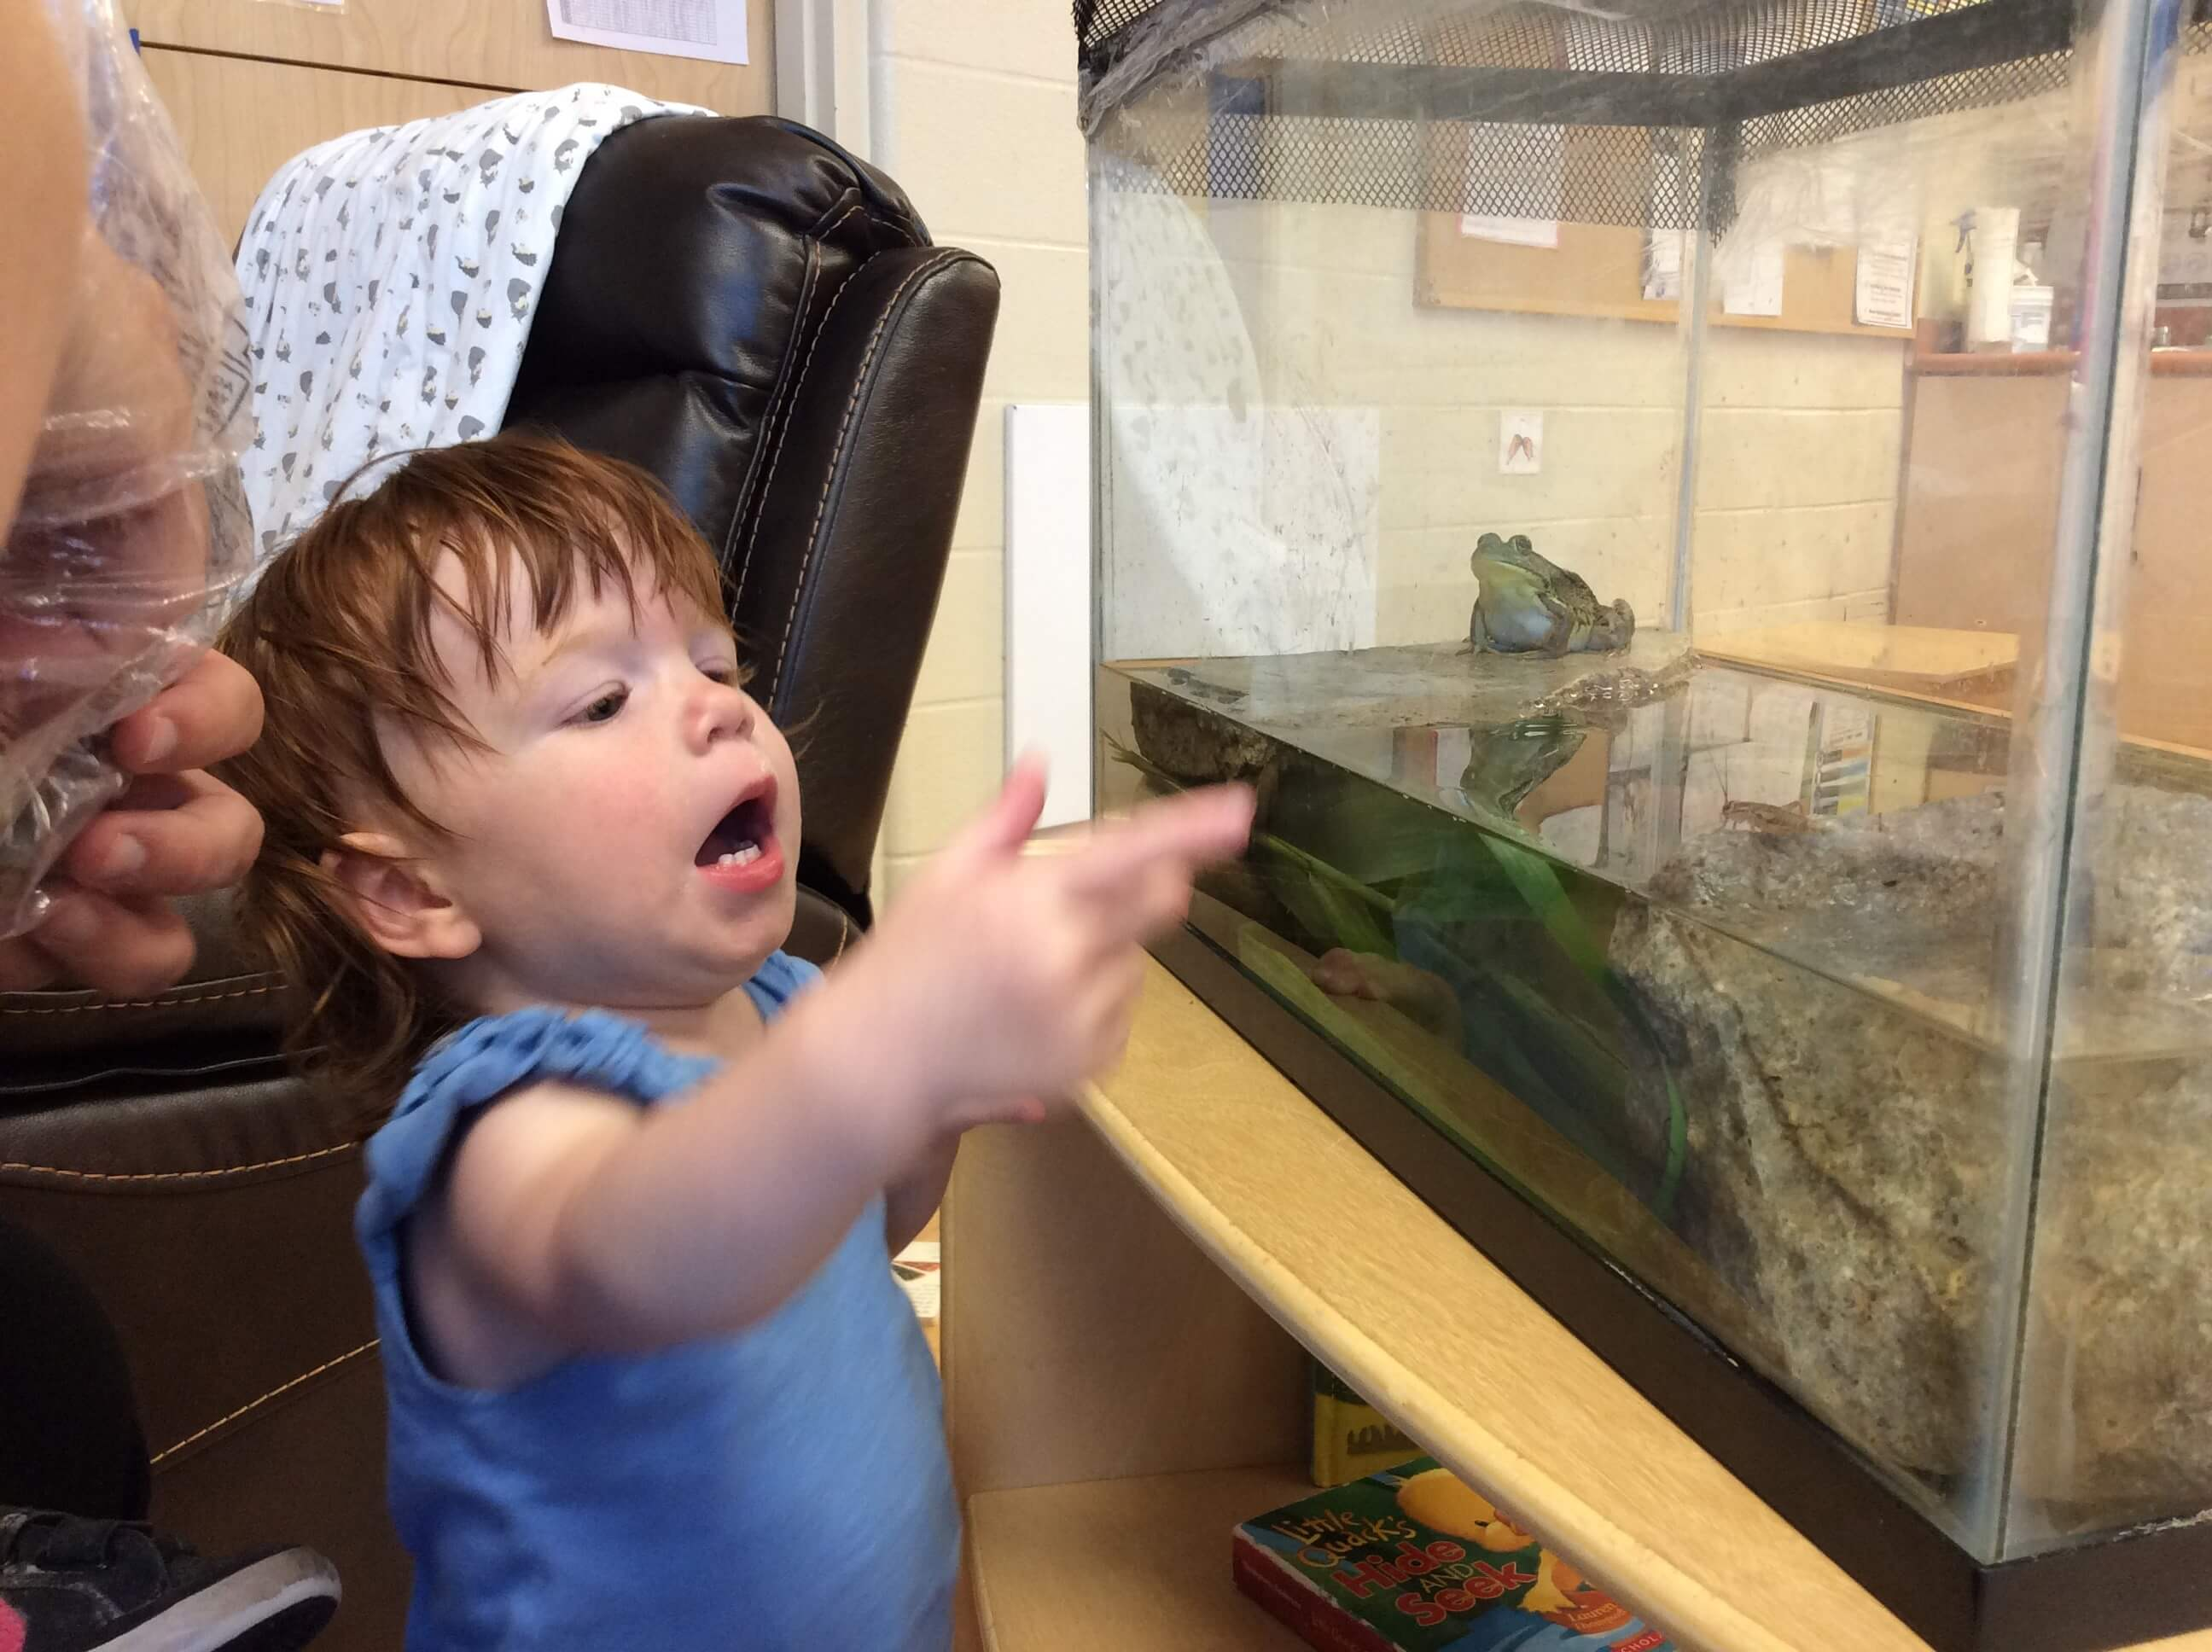 infant looking at a frog tank